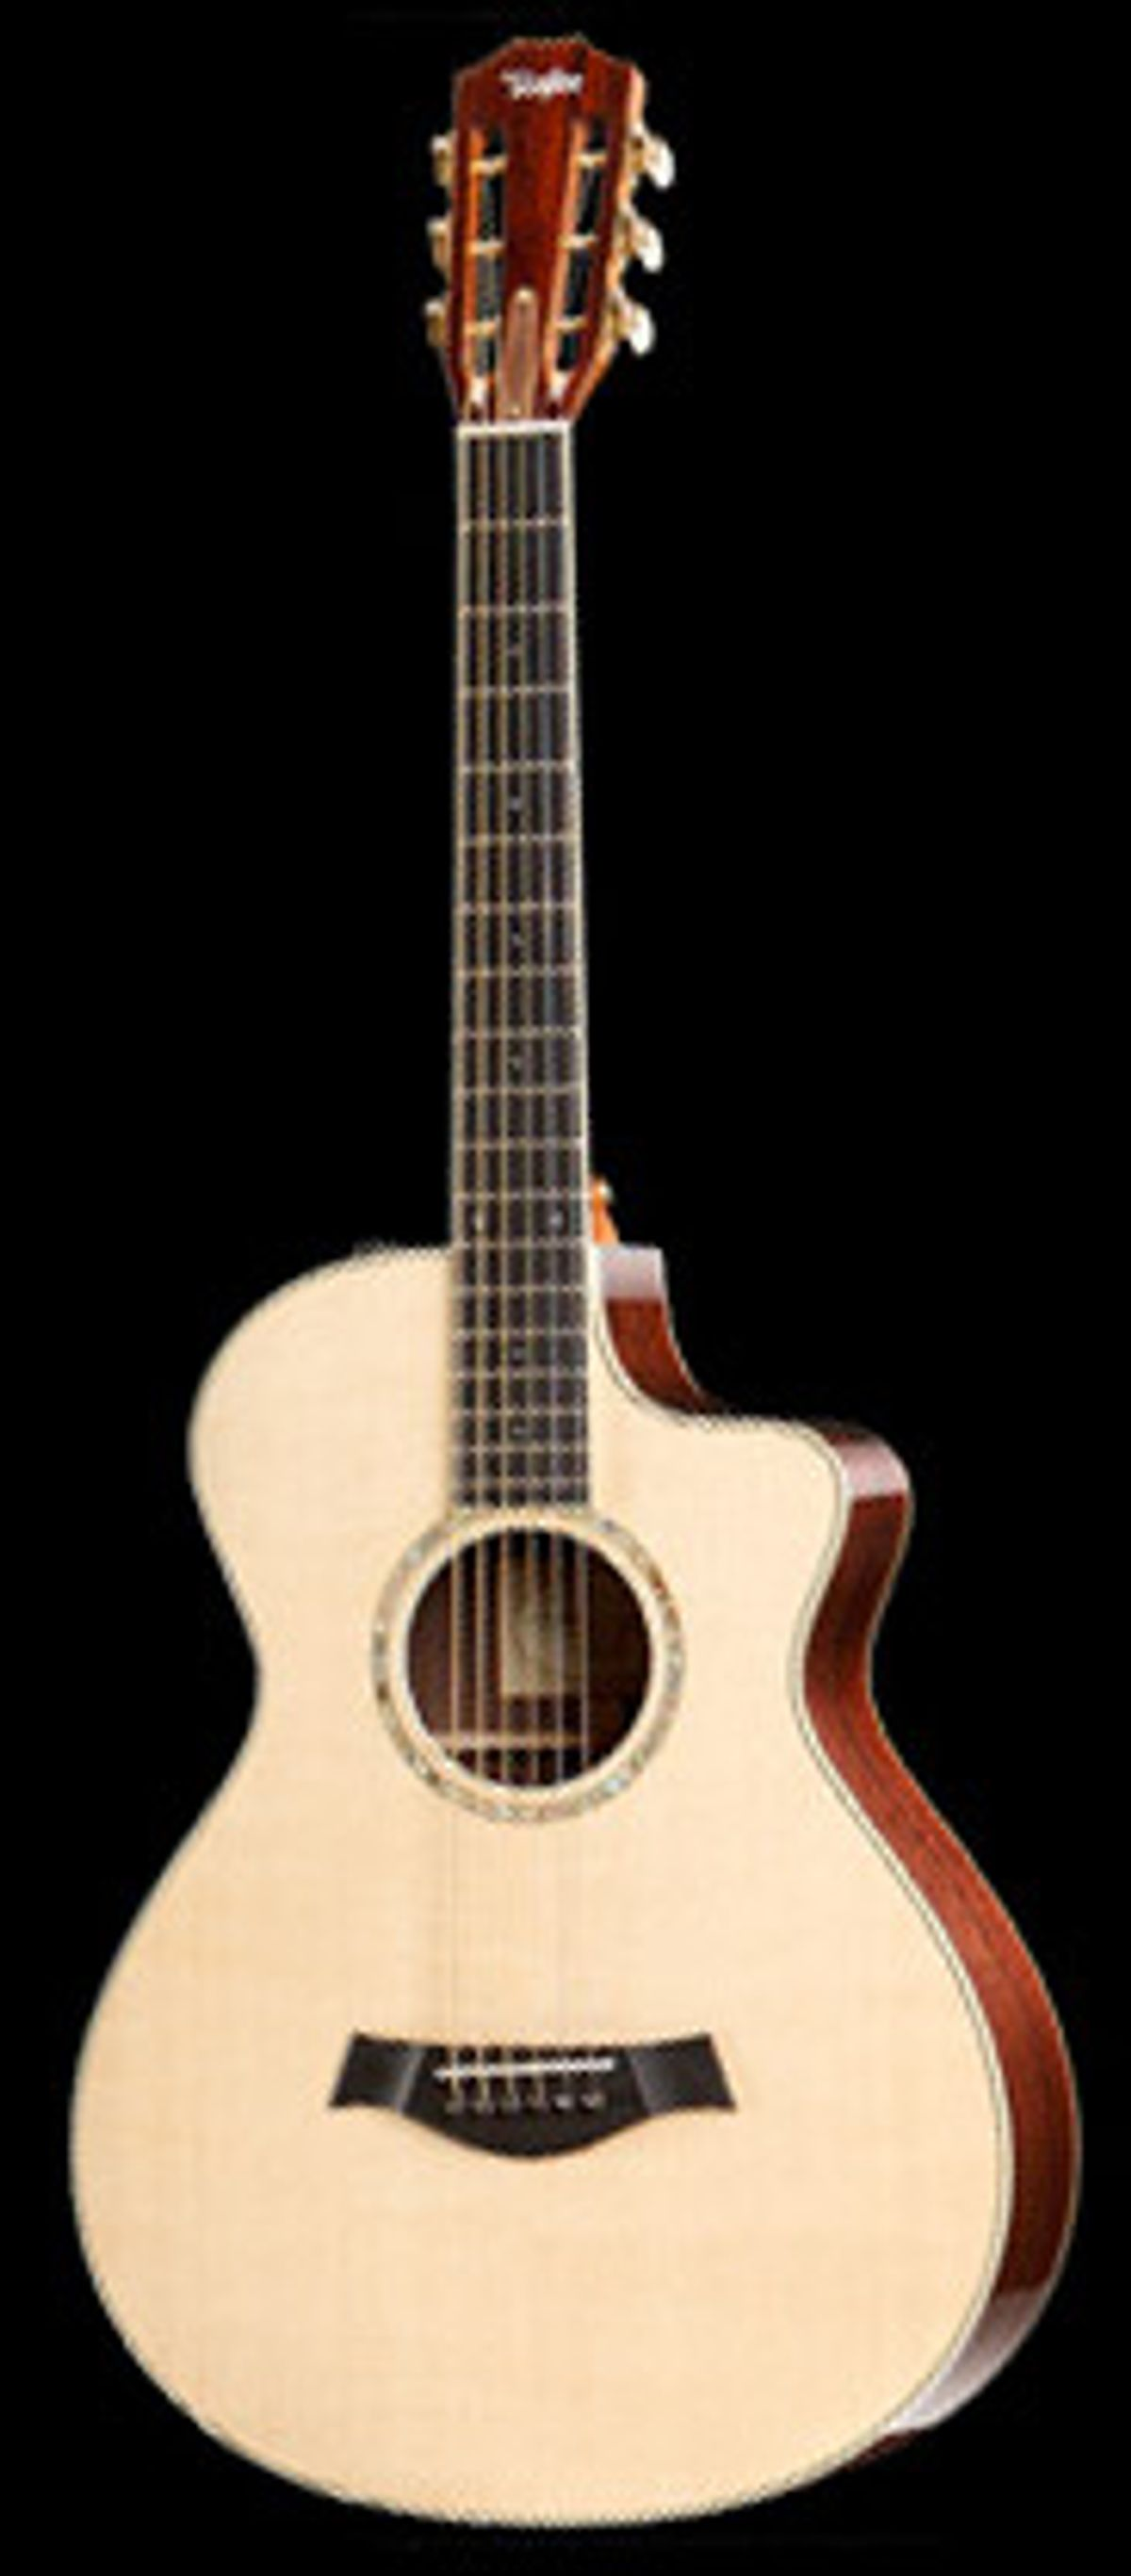 Taylor Guitars Adds 12-Fret Model to Specialty Line